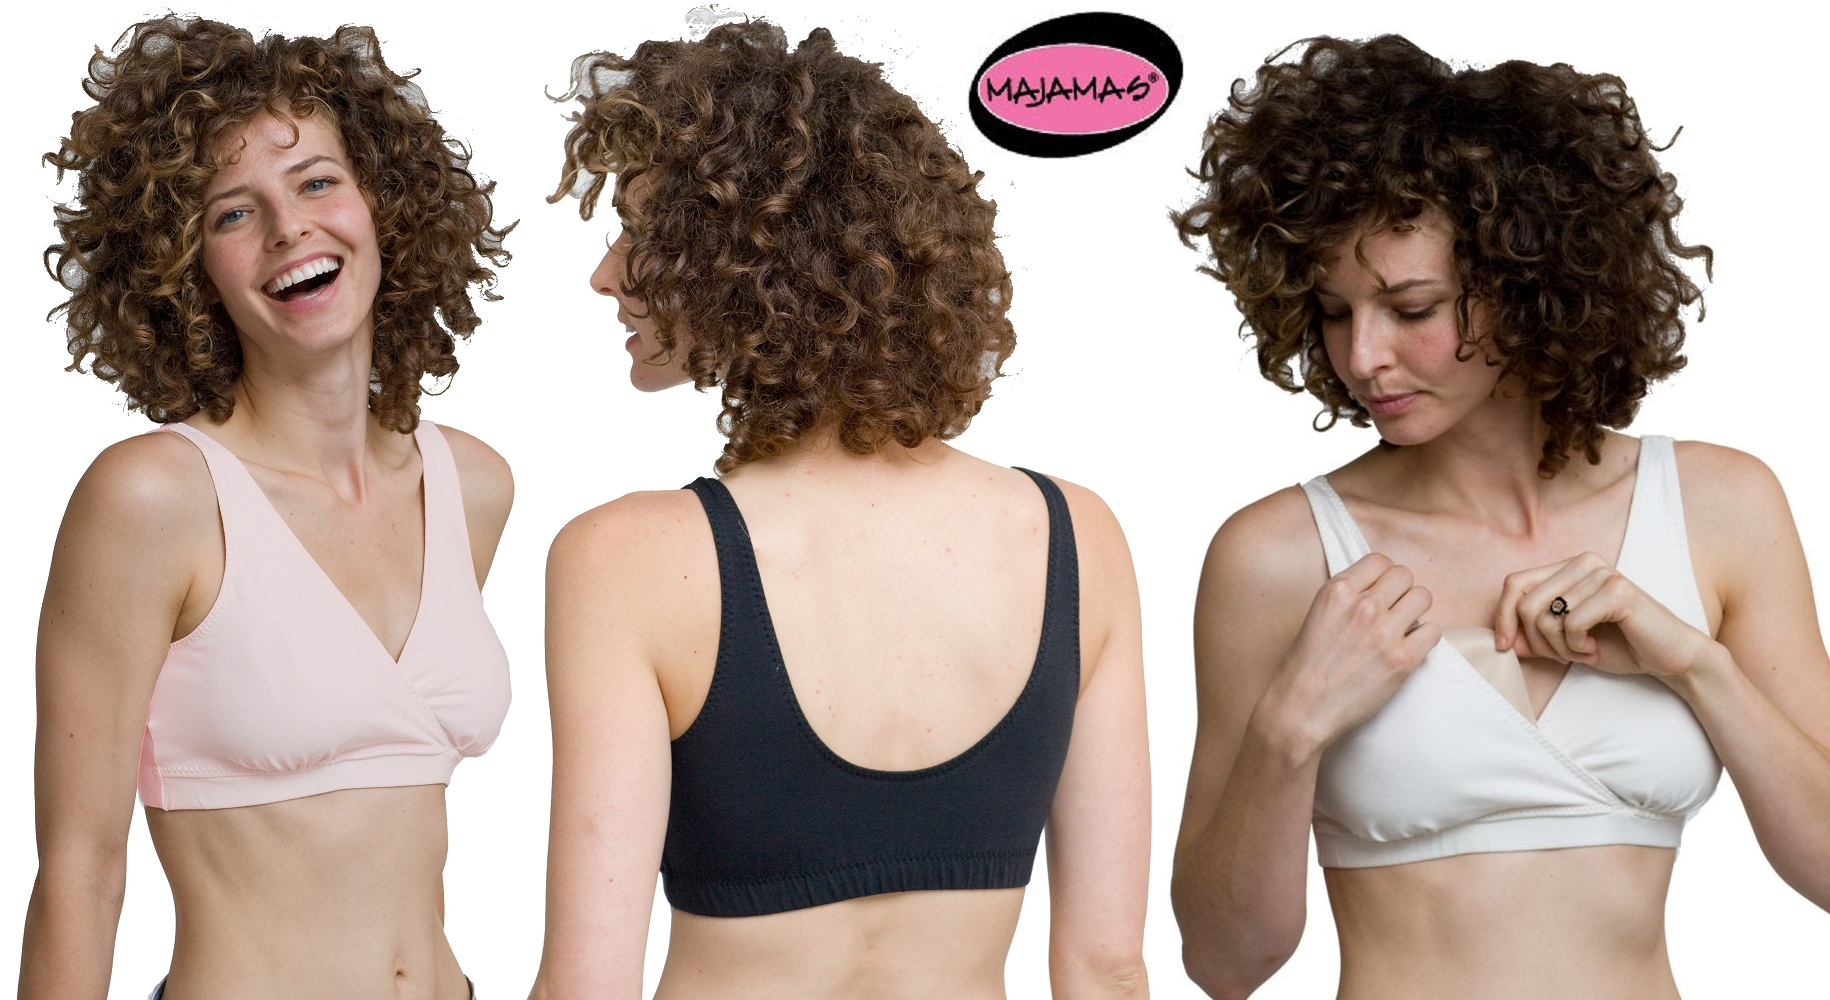 majamas-organic-daily-nursing-bra-all.jpg